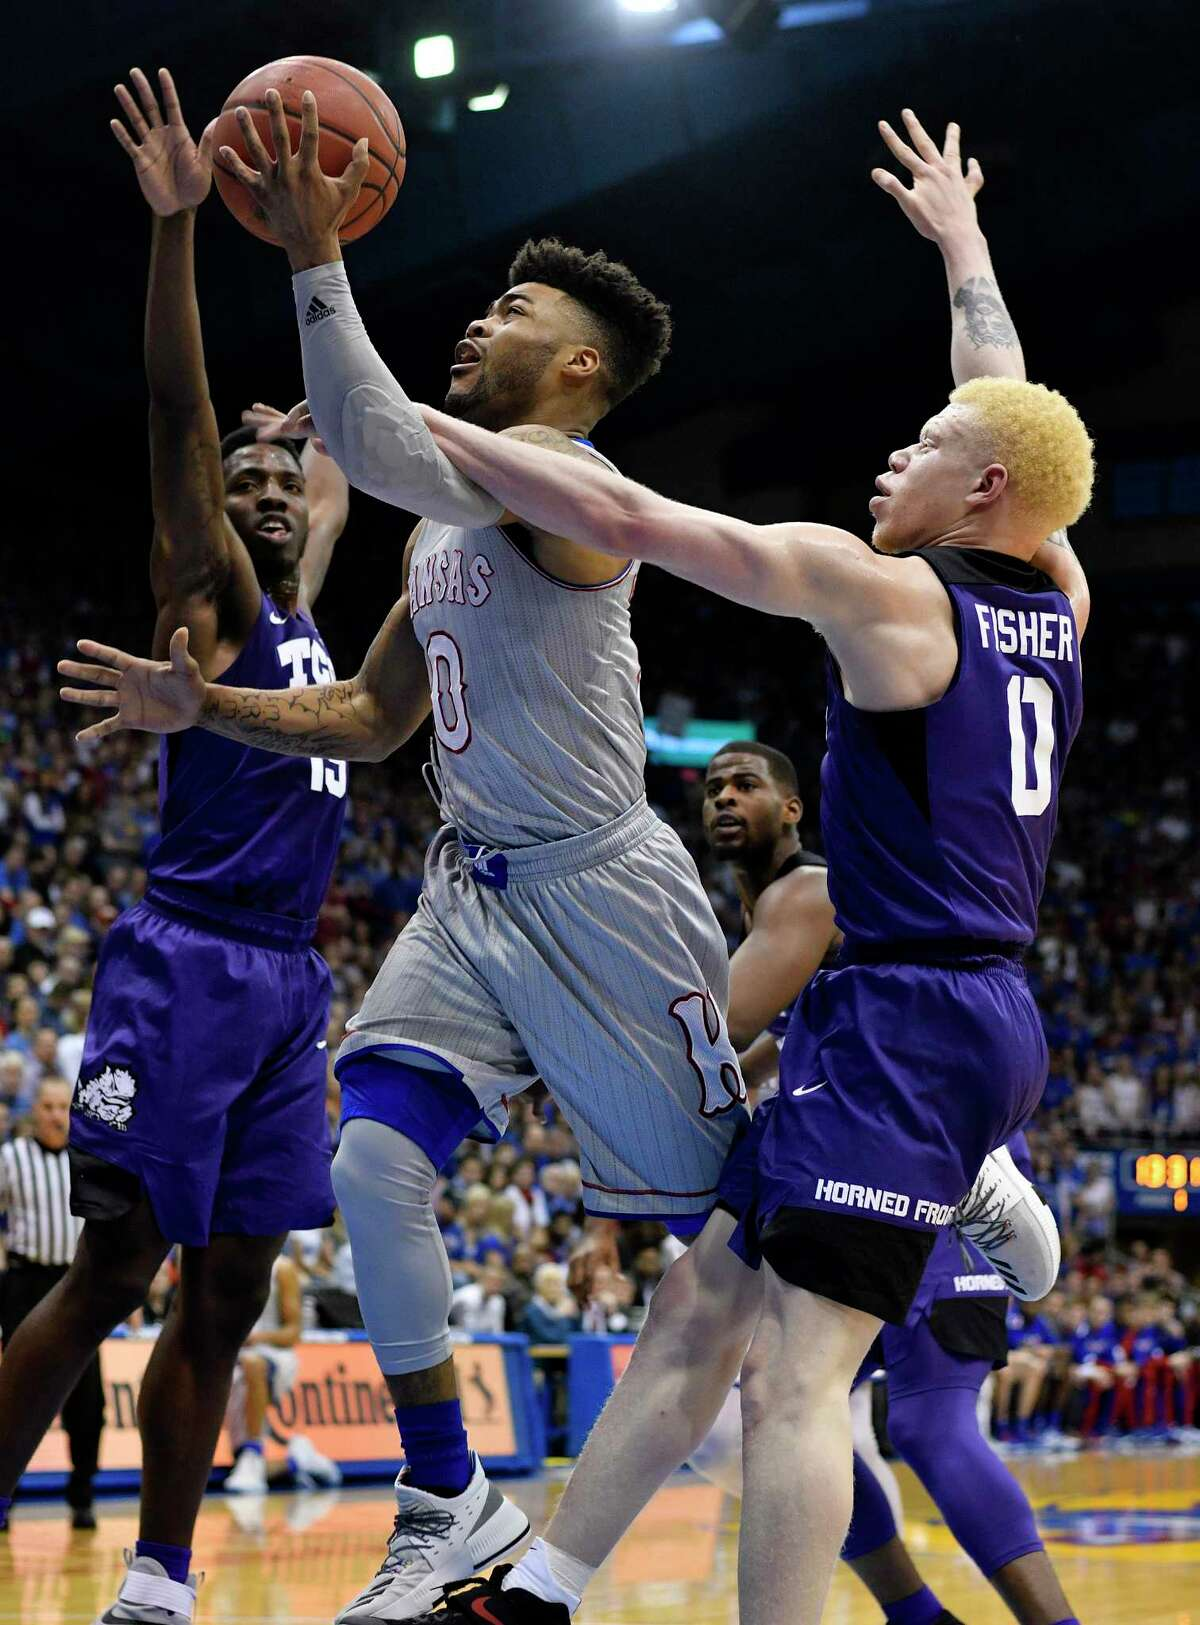 LAWRENCE, KS - FEBRUARY 22: Frank Mason III #0 of the Kansas Jayhawks lays the ball up against JD Miller #15 and Jaylen Fisher #0 of the TCU Horned Frogs in the first half at Allen Fieldhouse on February 22, 2017 in Lawrence, Kansas. (Photo by Ed Zurga/Getty Images) ORG XMIT: 669708613